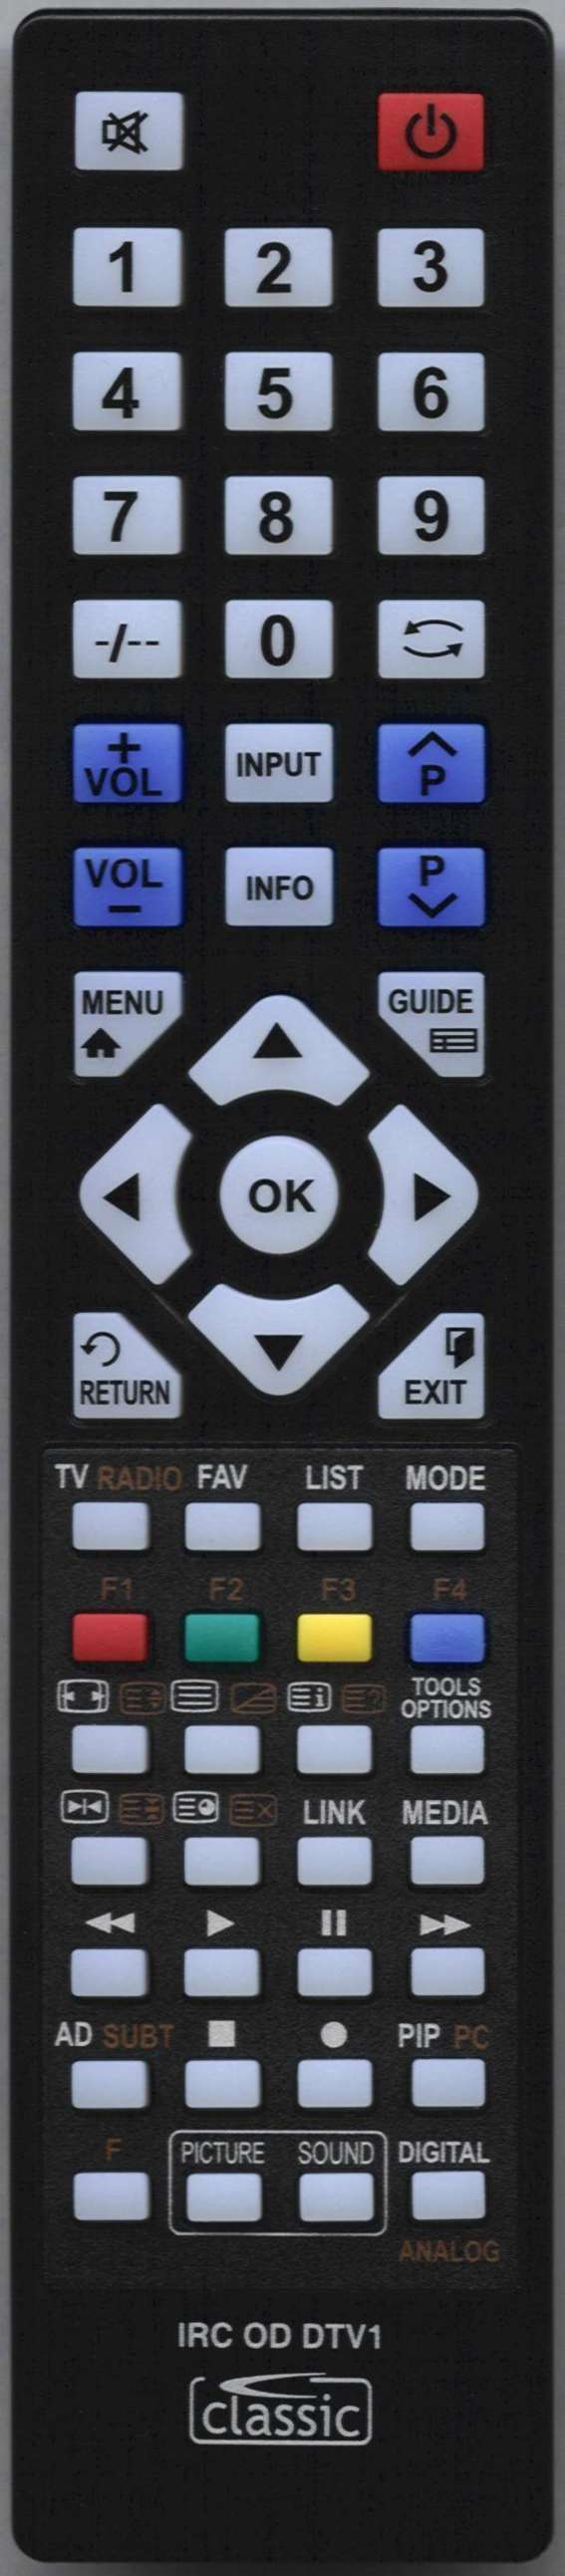 Polaroid P43FP0037A Remote Control Alternative